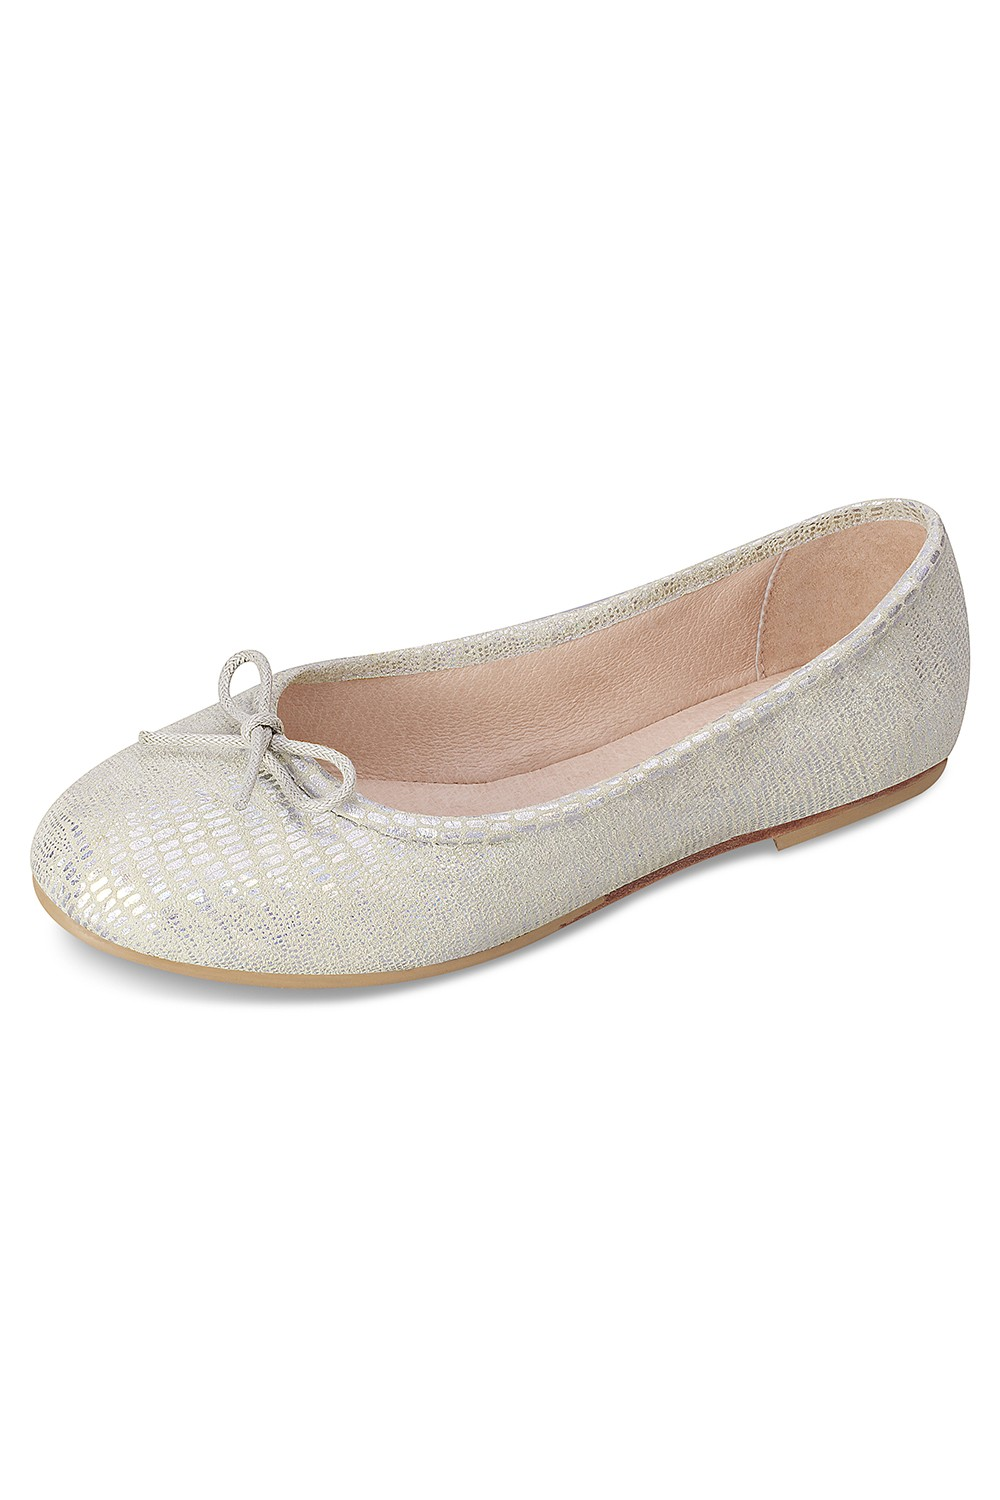 Ayano Girls Ballet Flat Girls Fashion Shoes